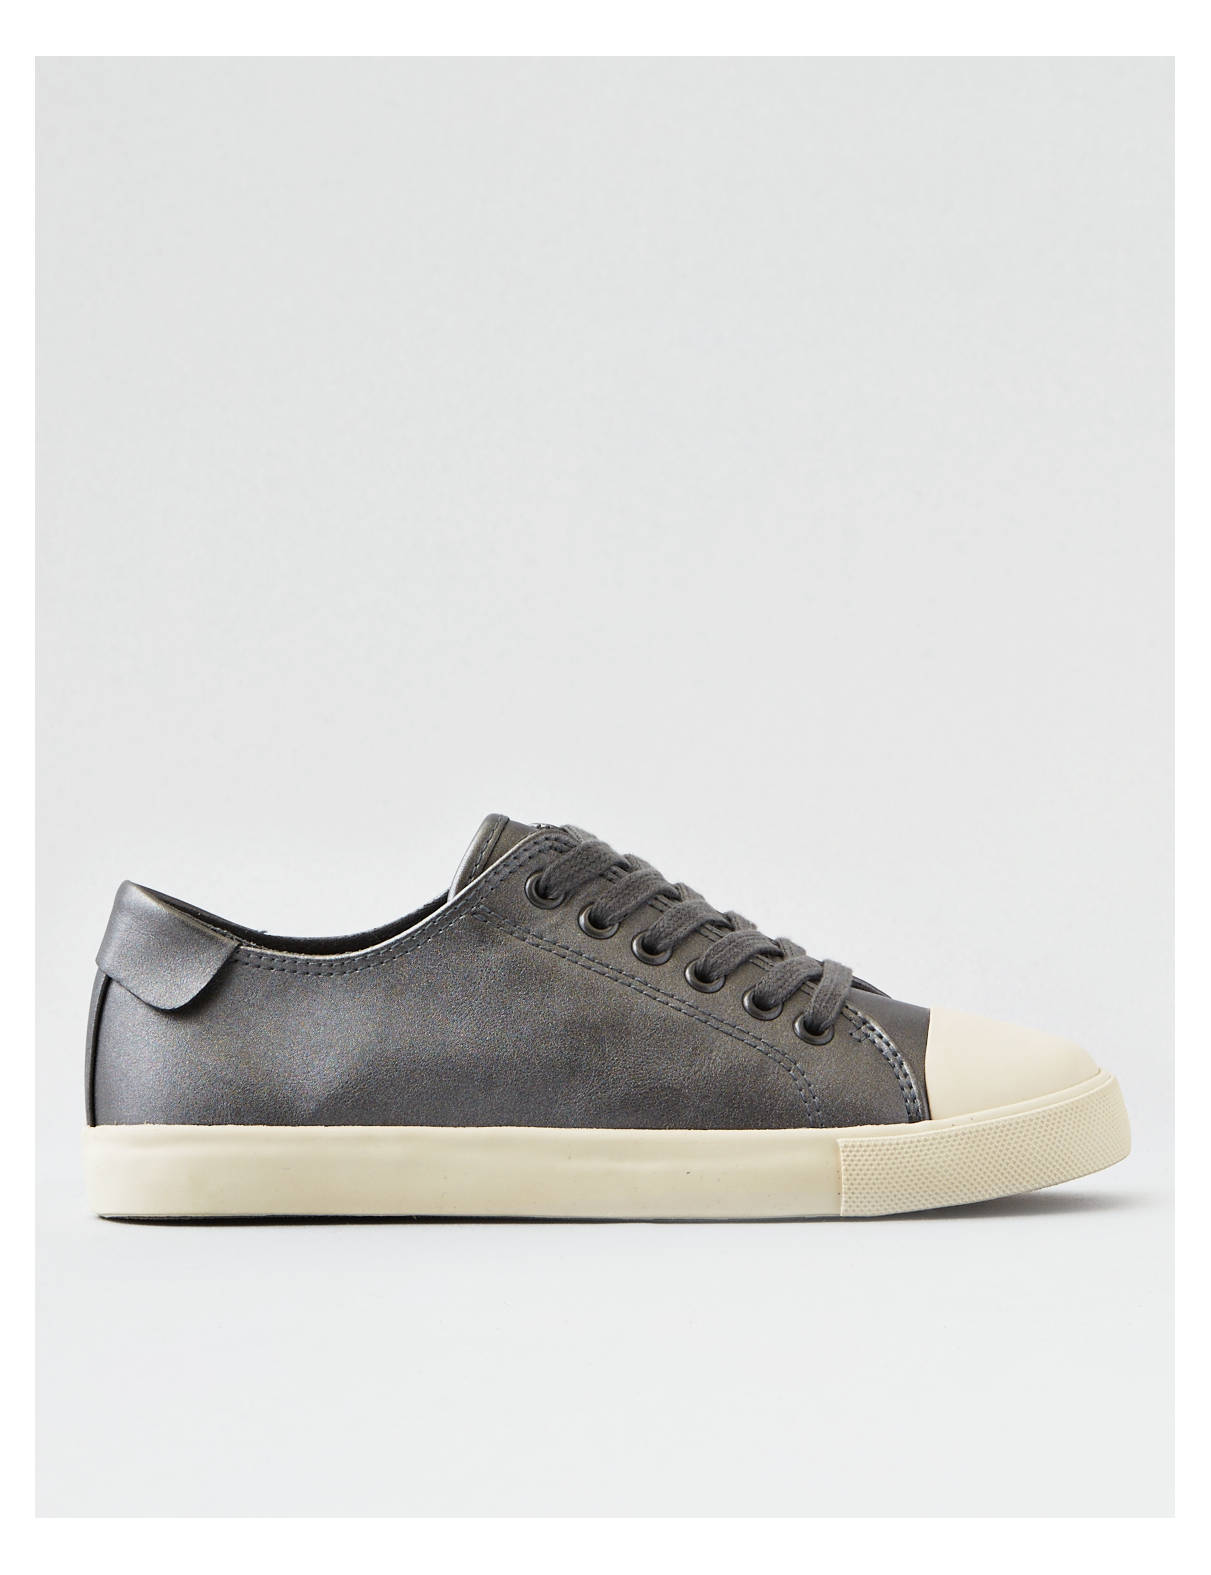 Display product reviews for AEO Metallic Low Top Sneaker